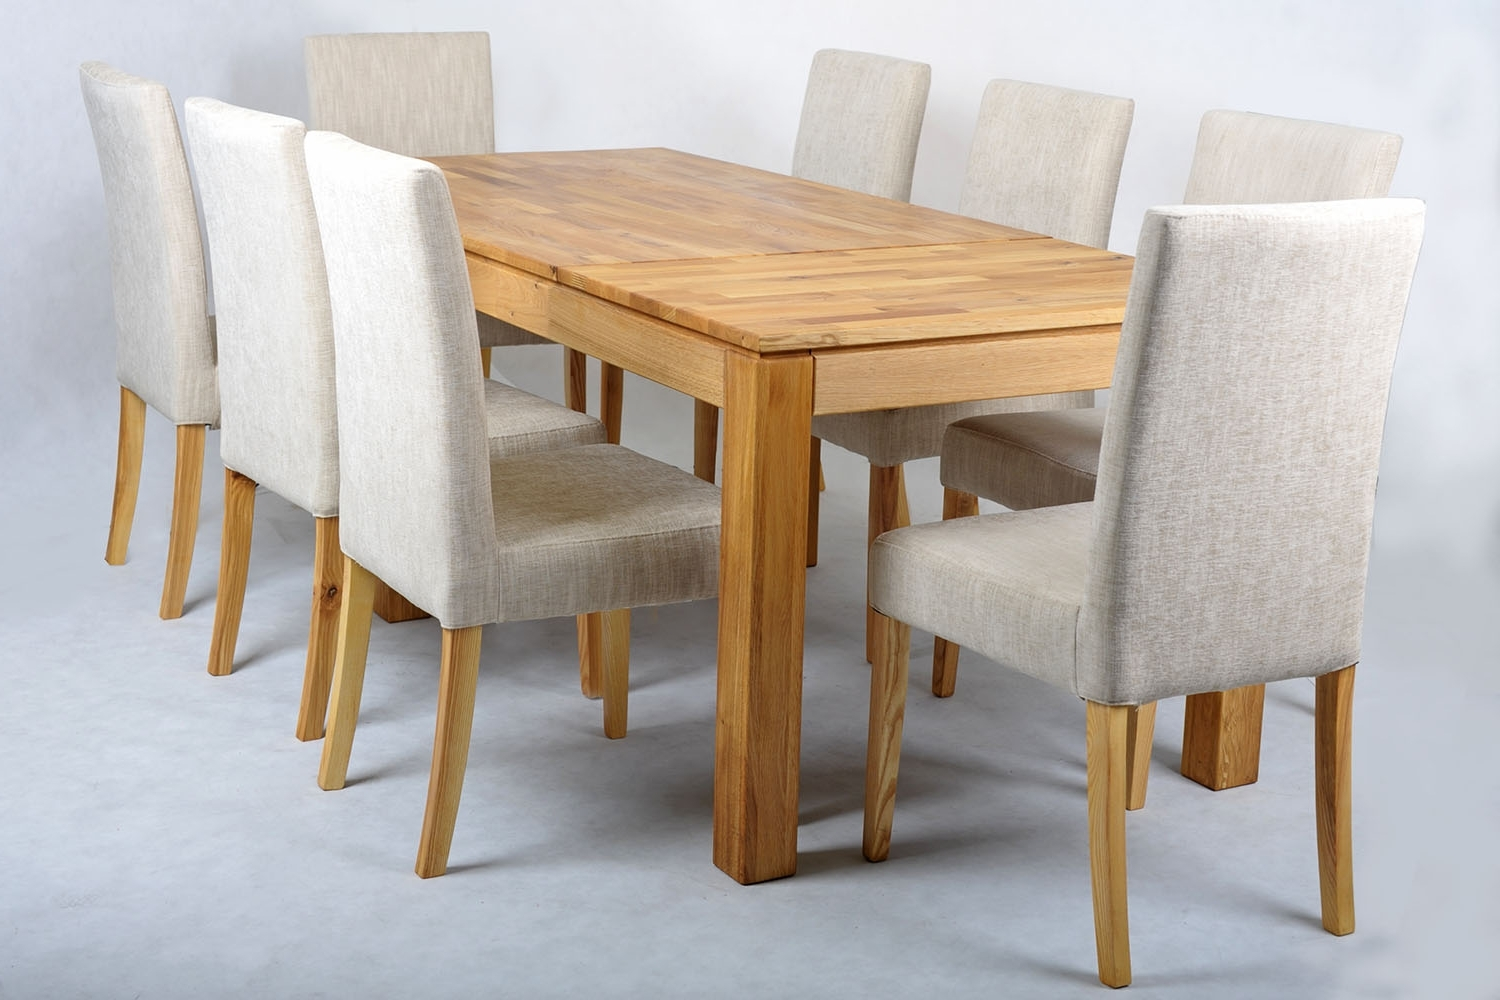 Popular Oak Dining Tables And Fabric Chairs Within Oak Extending Dining Table And Fabric Chairs Set Ivory Stainless (View 6 of 25)